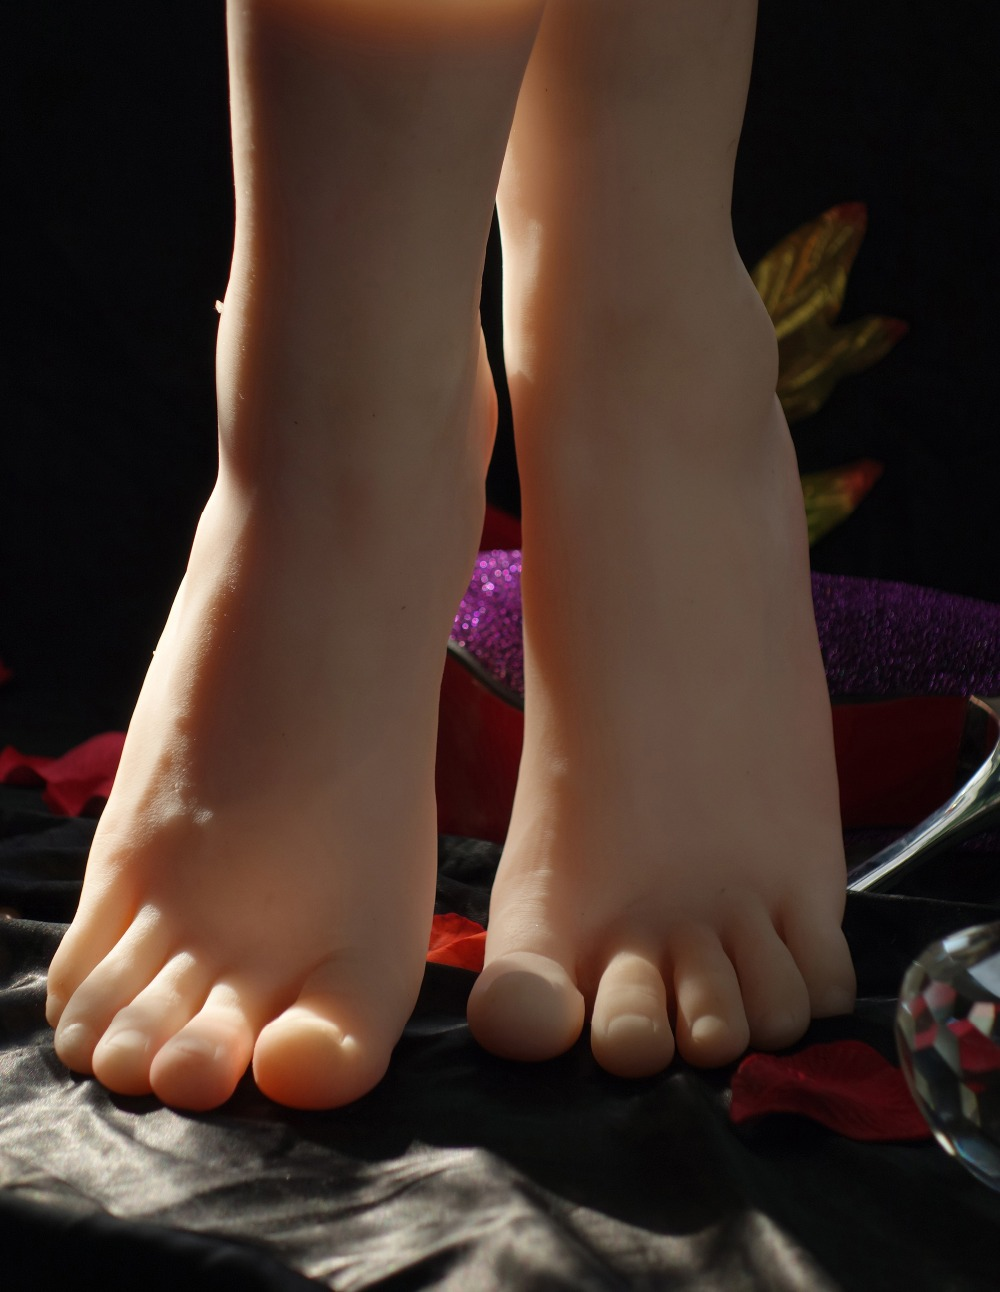 Real skin sex dolls japanese masturbation full silicone life size fake feet foot fetish toy sexy toys love doll Free shipping